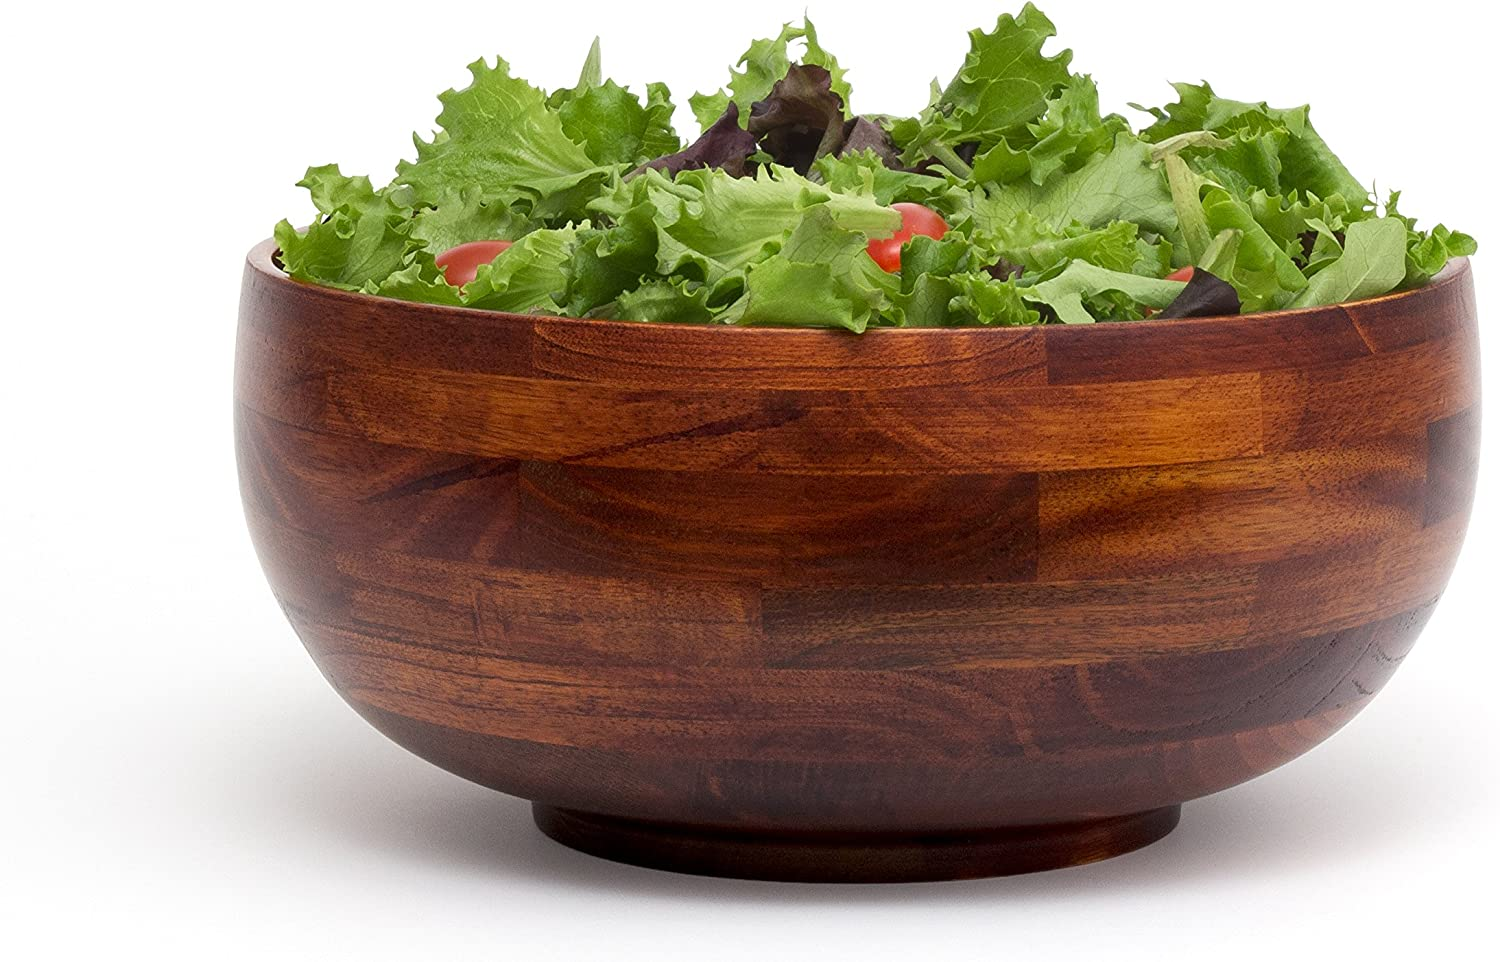 Single Bowl 12 Diameter x 5 Height Large Lipper International 224 Cherry Finished Footed Rice Serving Bowl